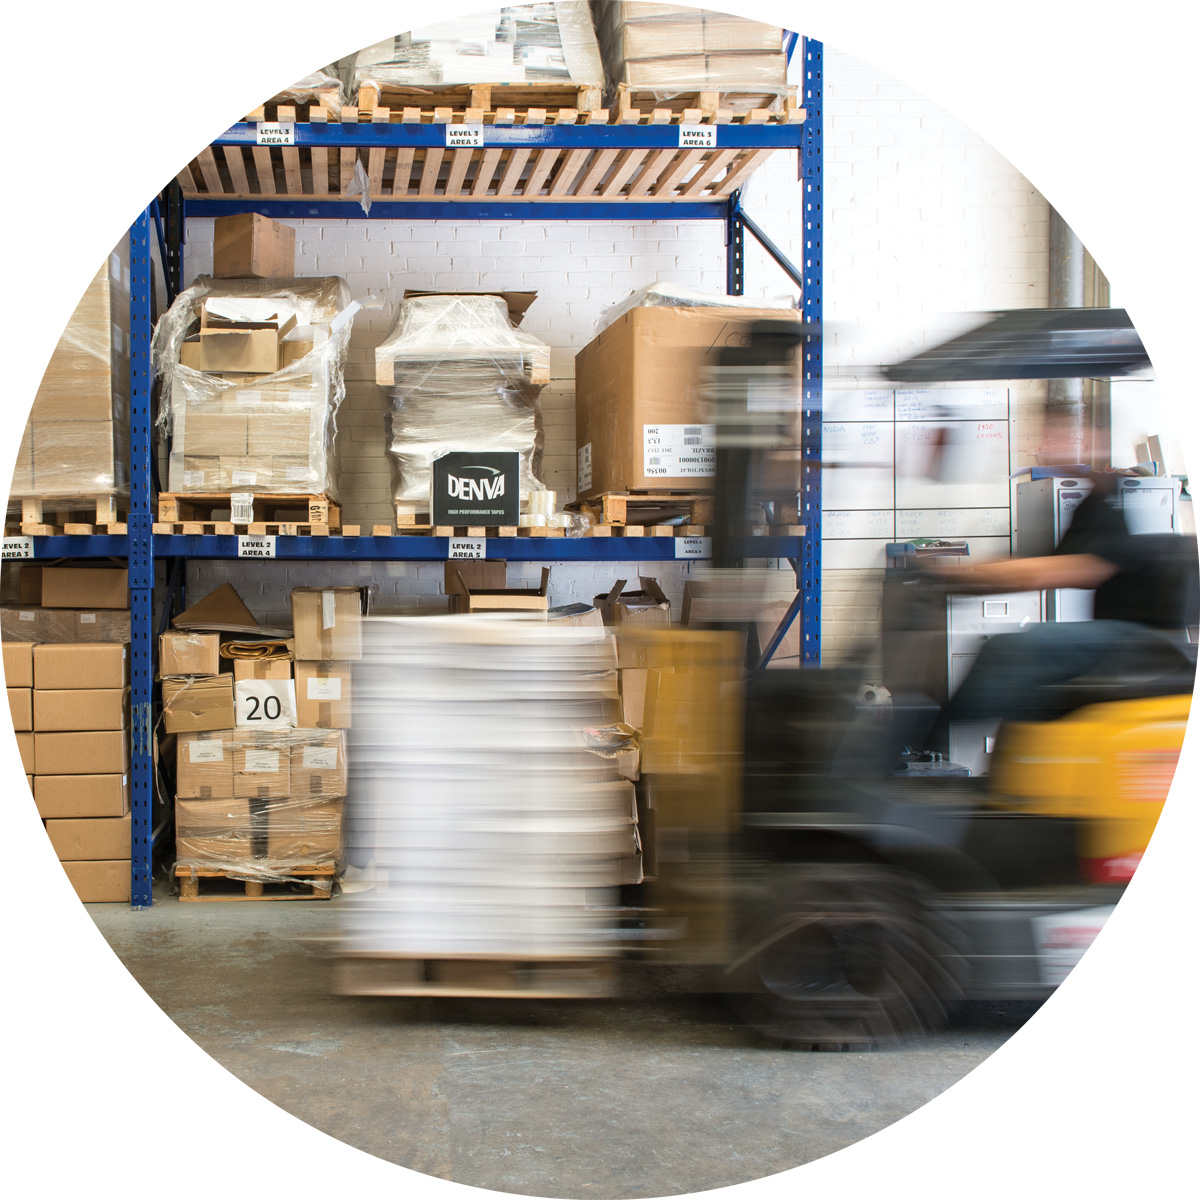 Warehousing and stock management